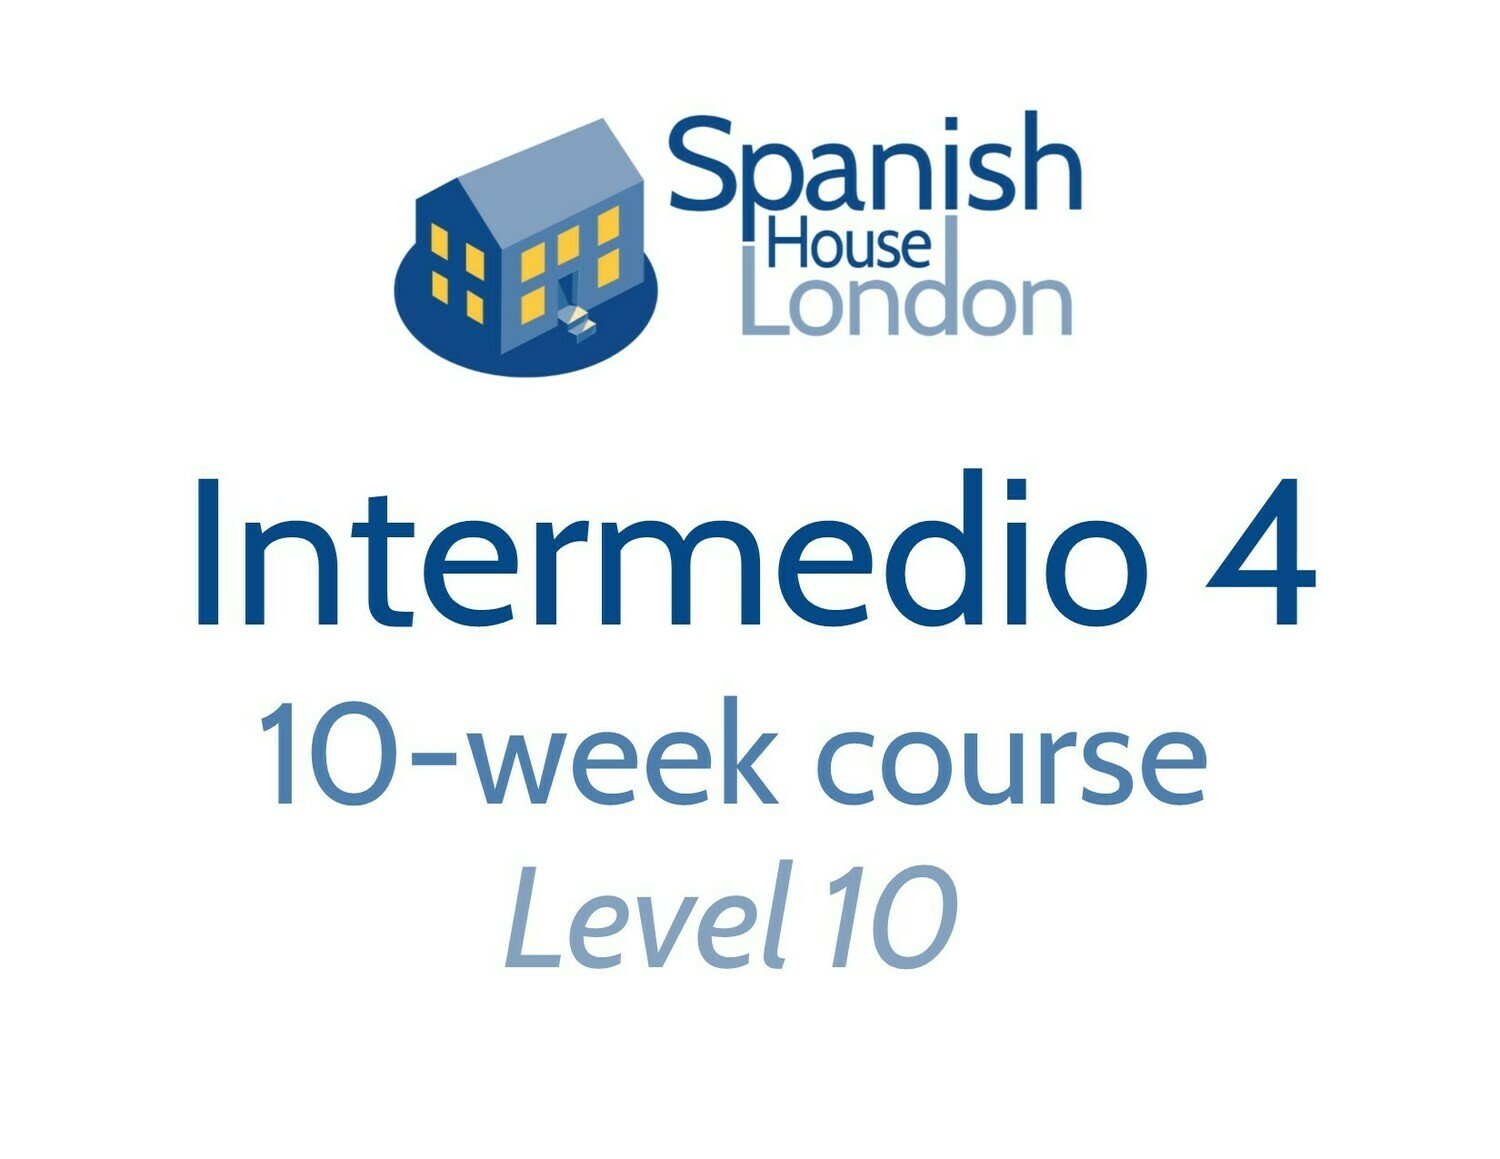 Intermedio 4 Course starting on 8th September at 7.30pm in Clapham North